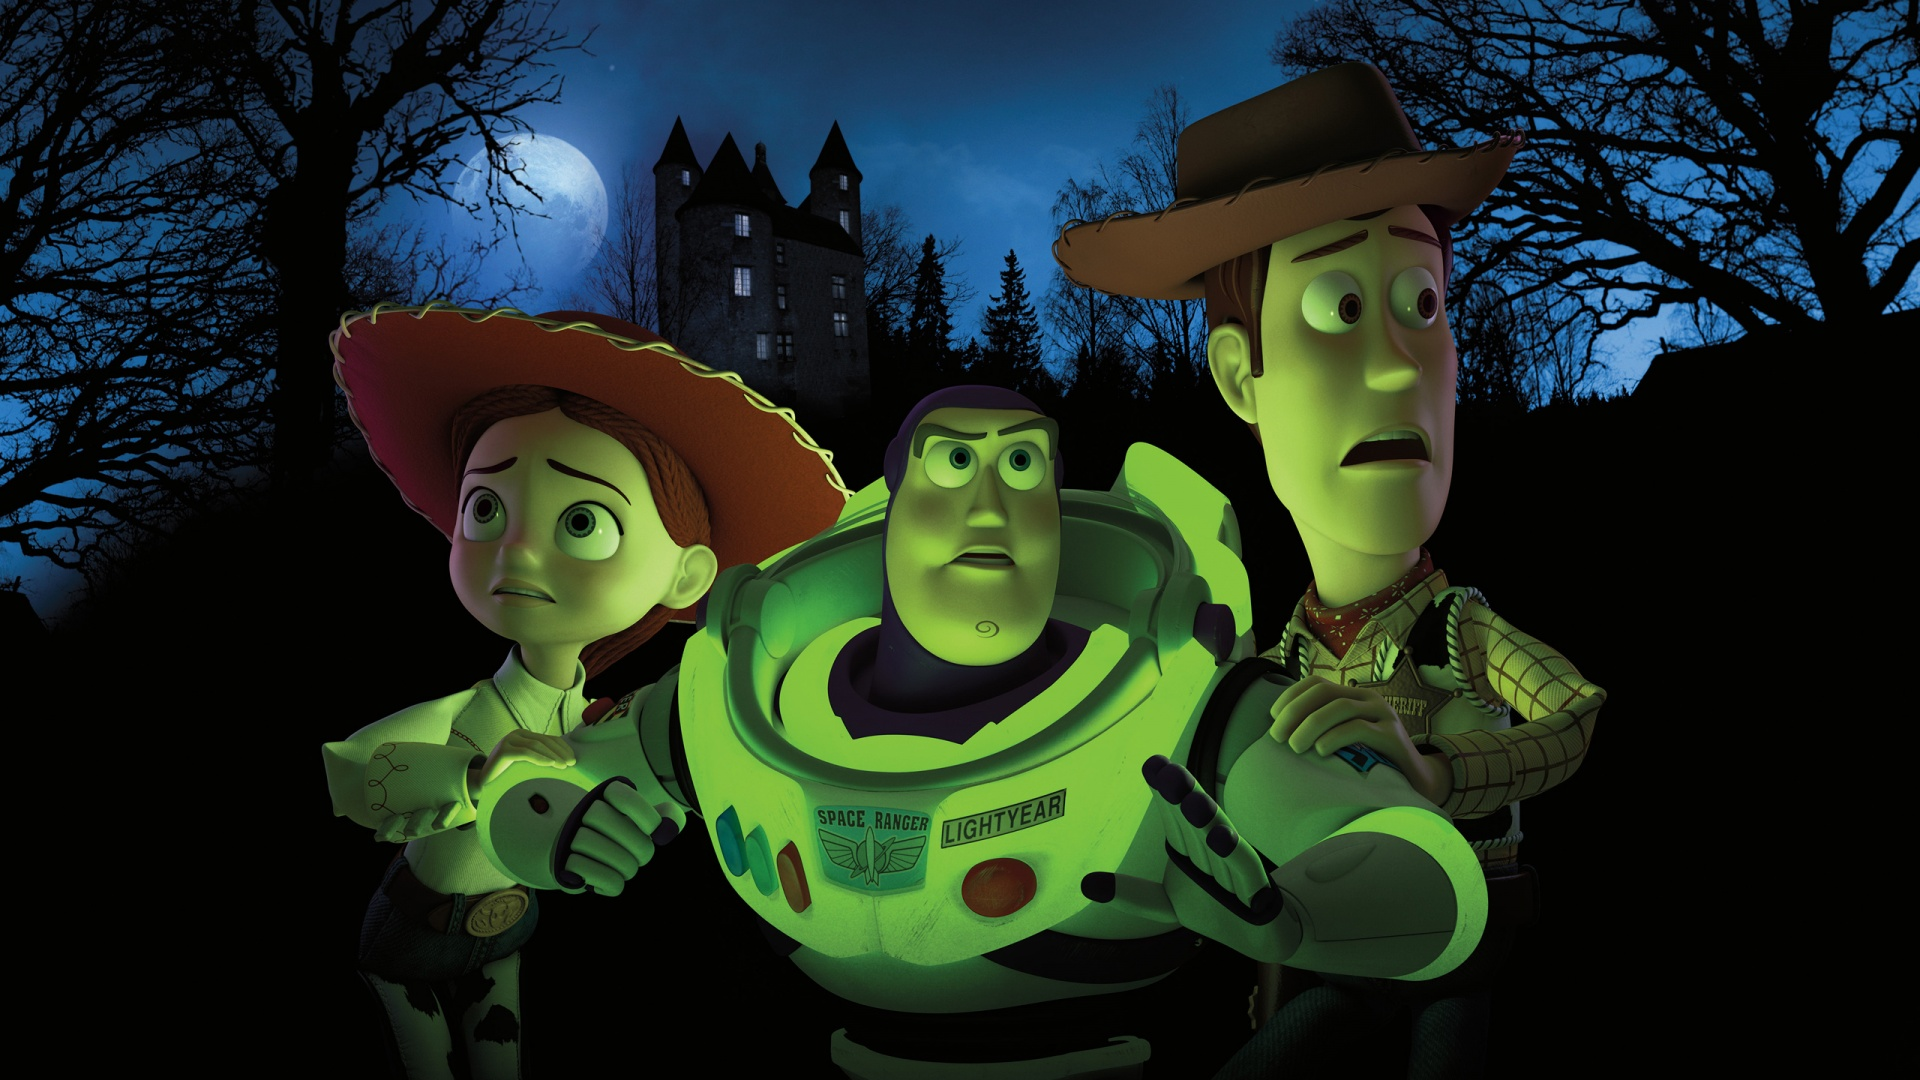 Toy story wallpapers pictures images - Toy story wallpaper ...